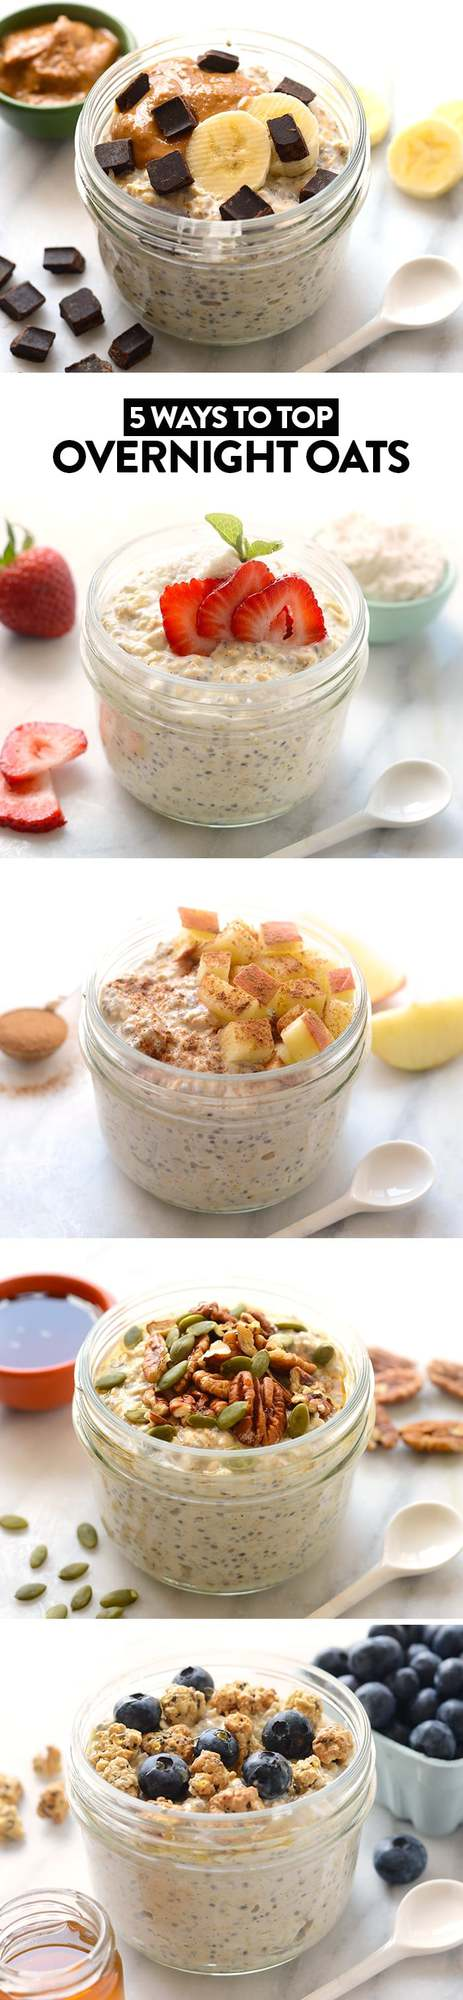 5-WAYS-TO-TOP-OVERNIGHT-OATS